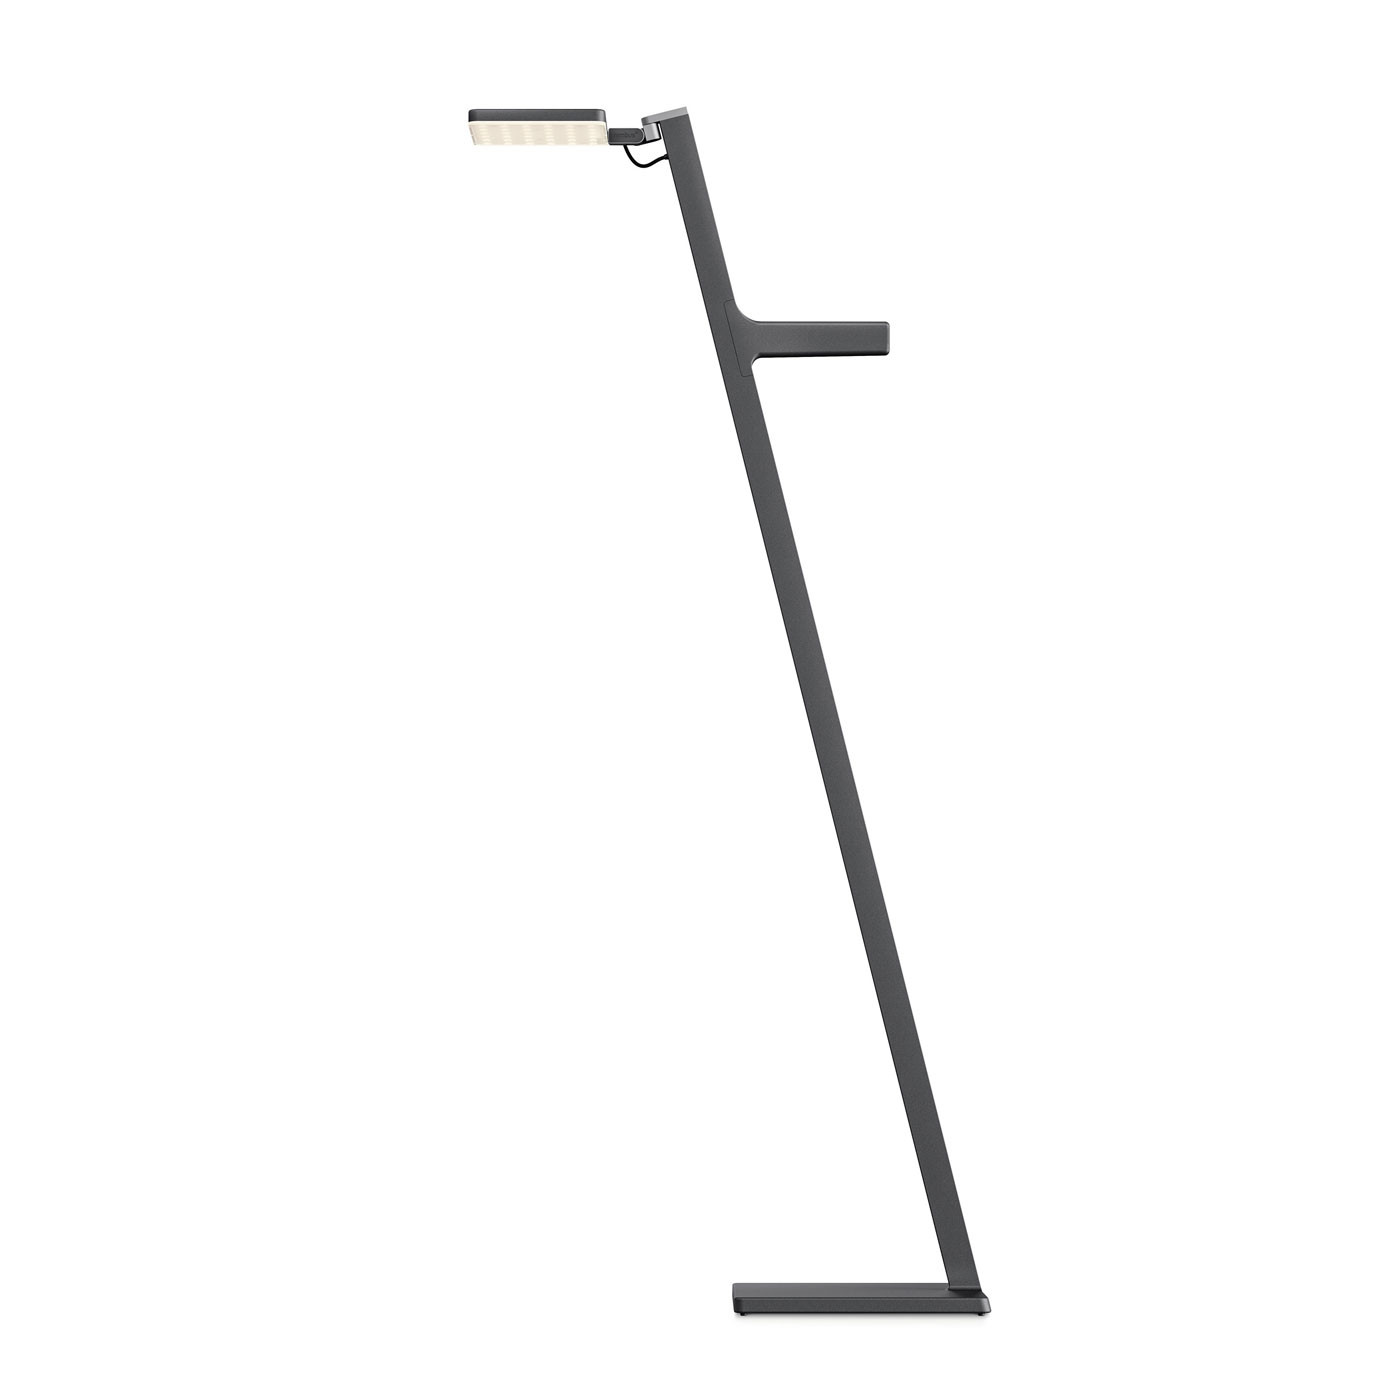 Nimbus Roxxane Leggera 101 CL Battery Floor Lamp without magnetic dock